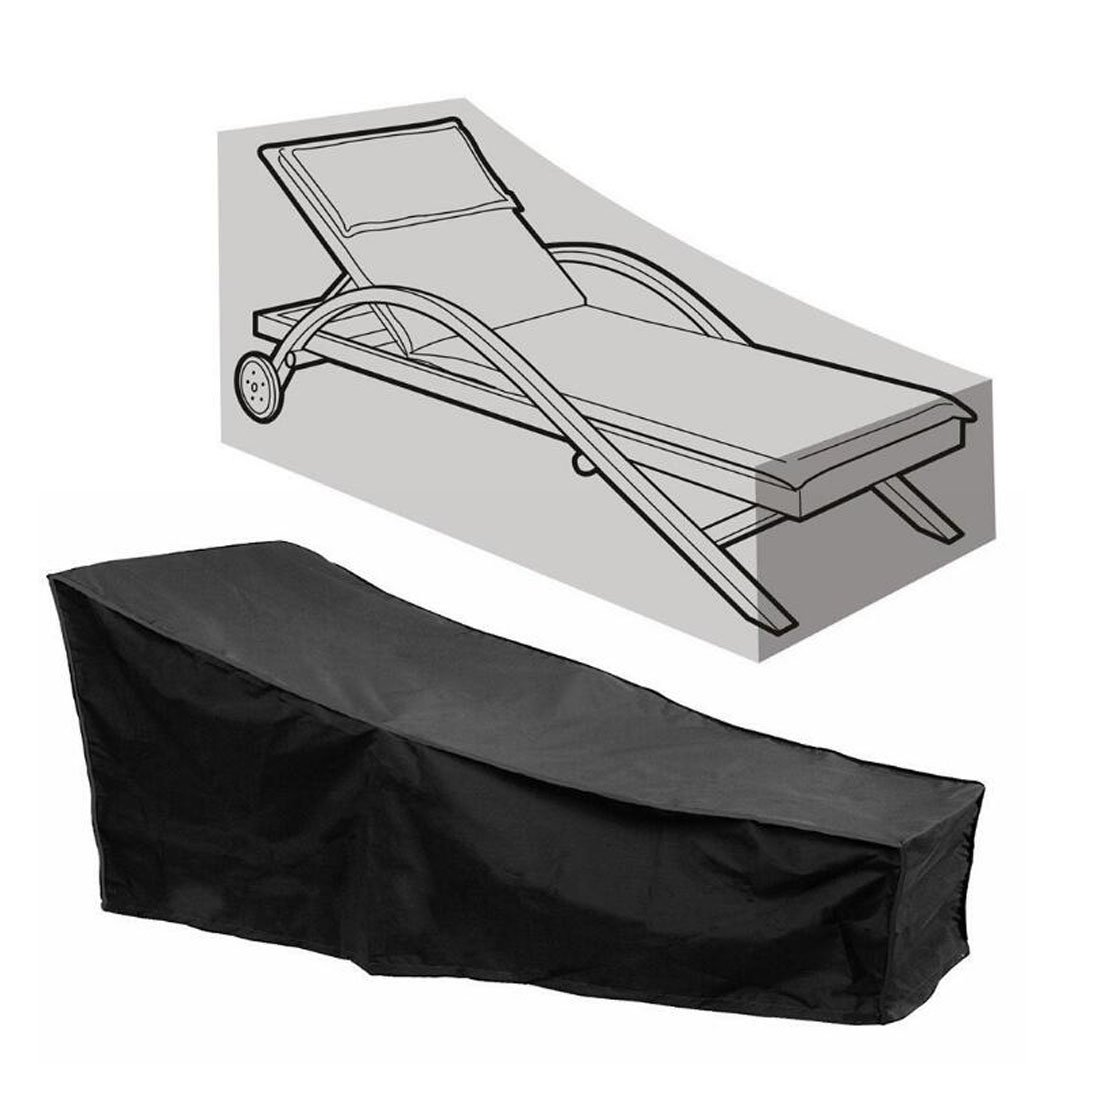 FLR Black Chaise Lounge Chair Cover Waterproof Dust-Proof Patio Chaise Covers Protection for Garden Yard Outdoor Furniture Recliner Cover by FLR